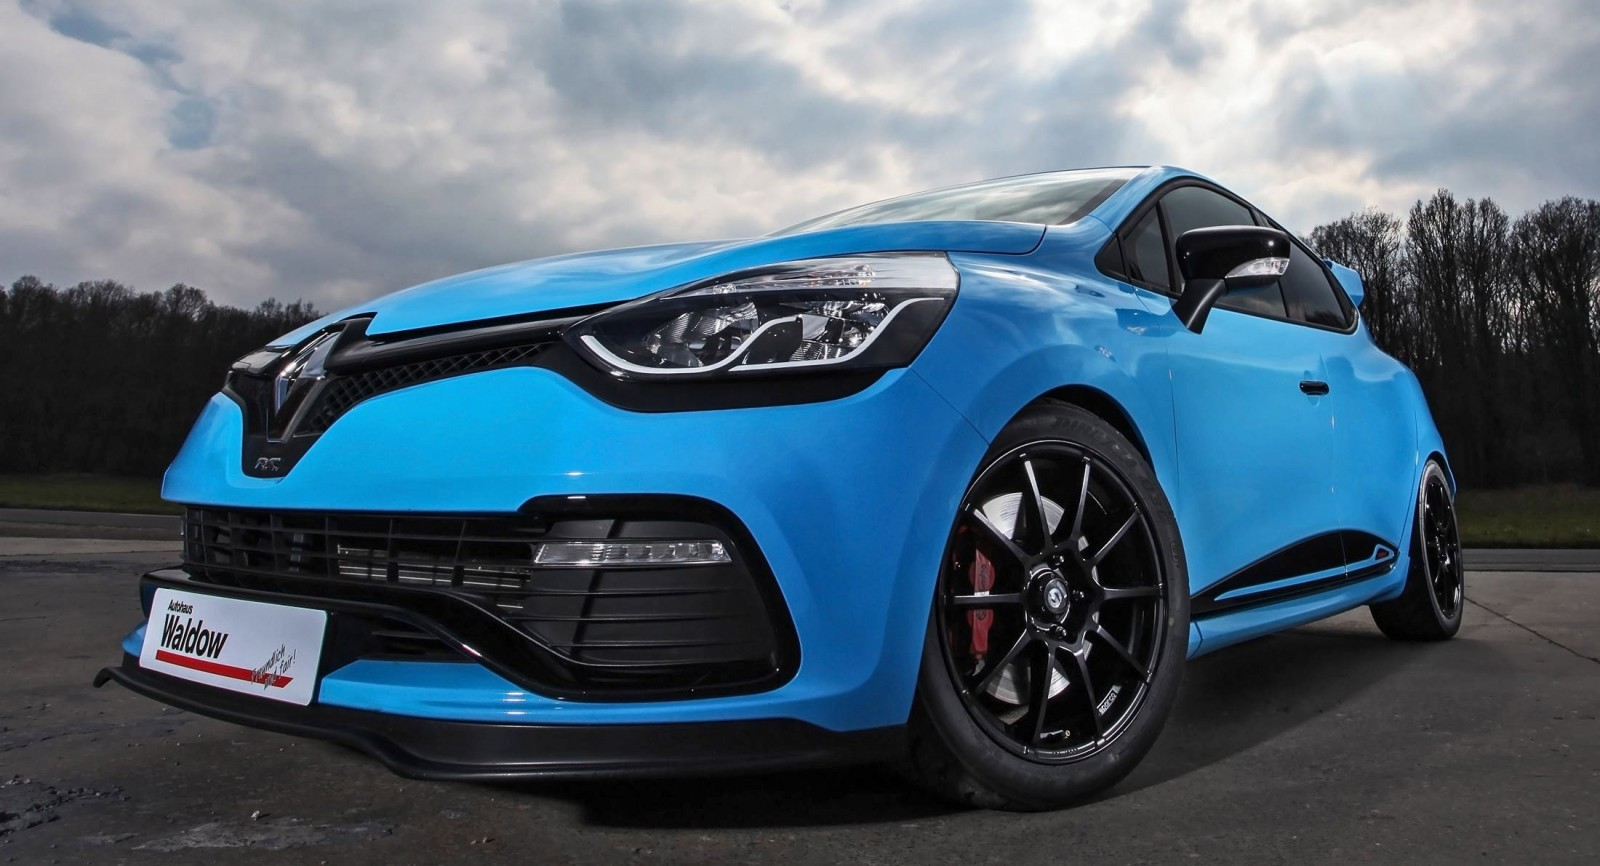 Volvo Of Houston >> 2016 Renault CLIO by WALDOW Performance - Smurfberry Blue Track Special » CAR SHOPPING » Car ...